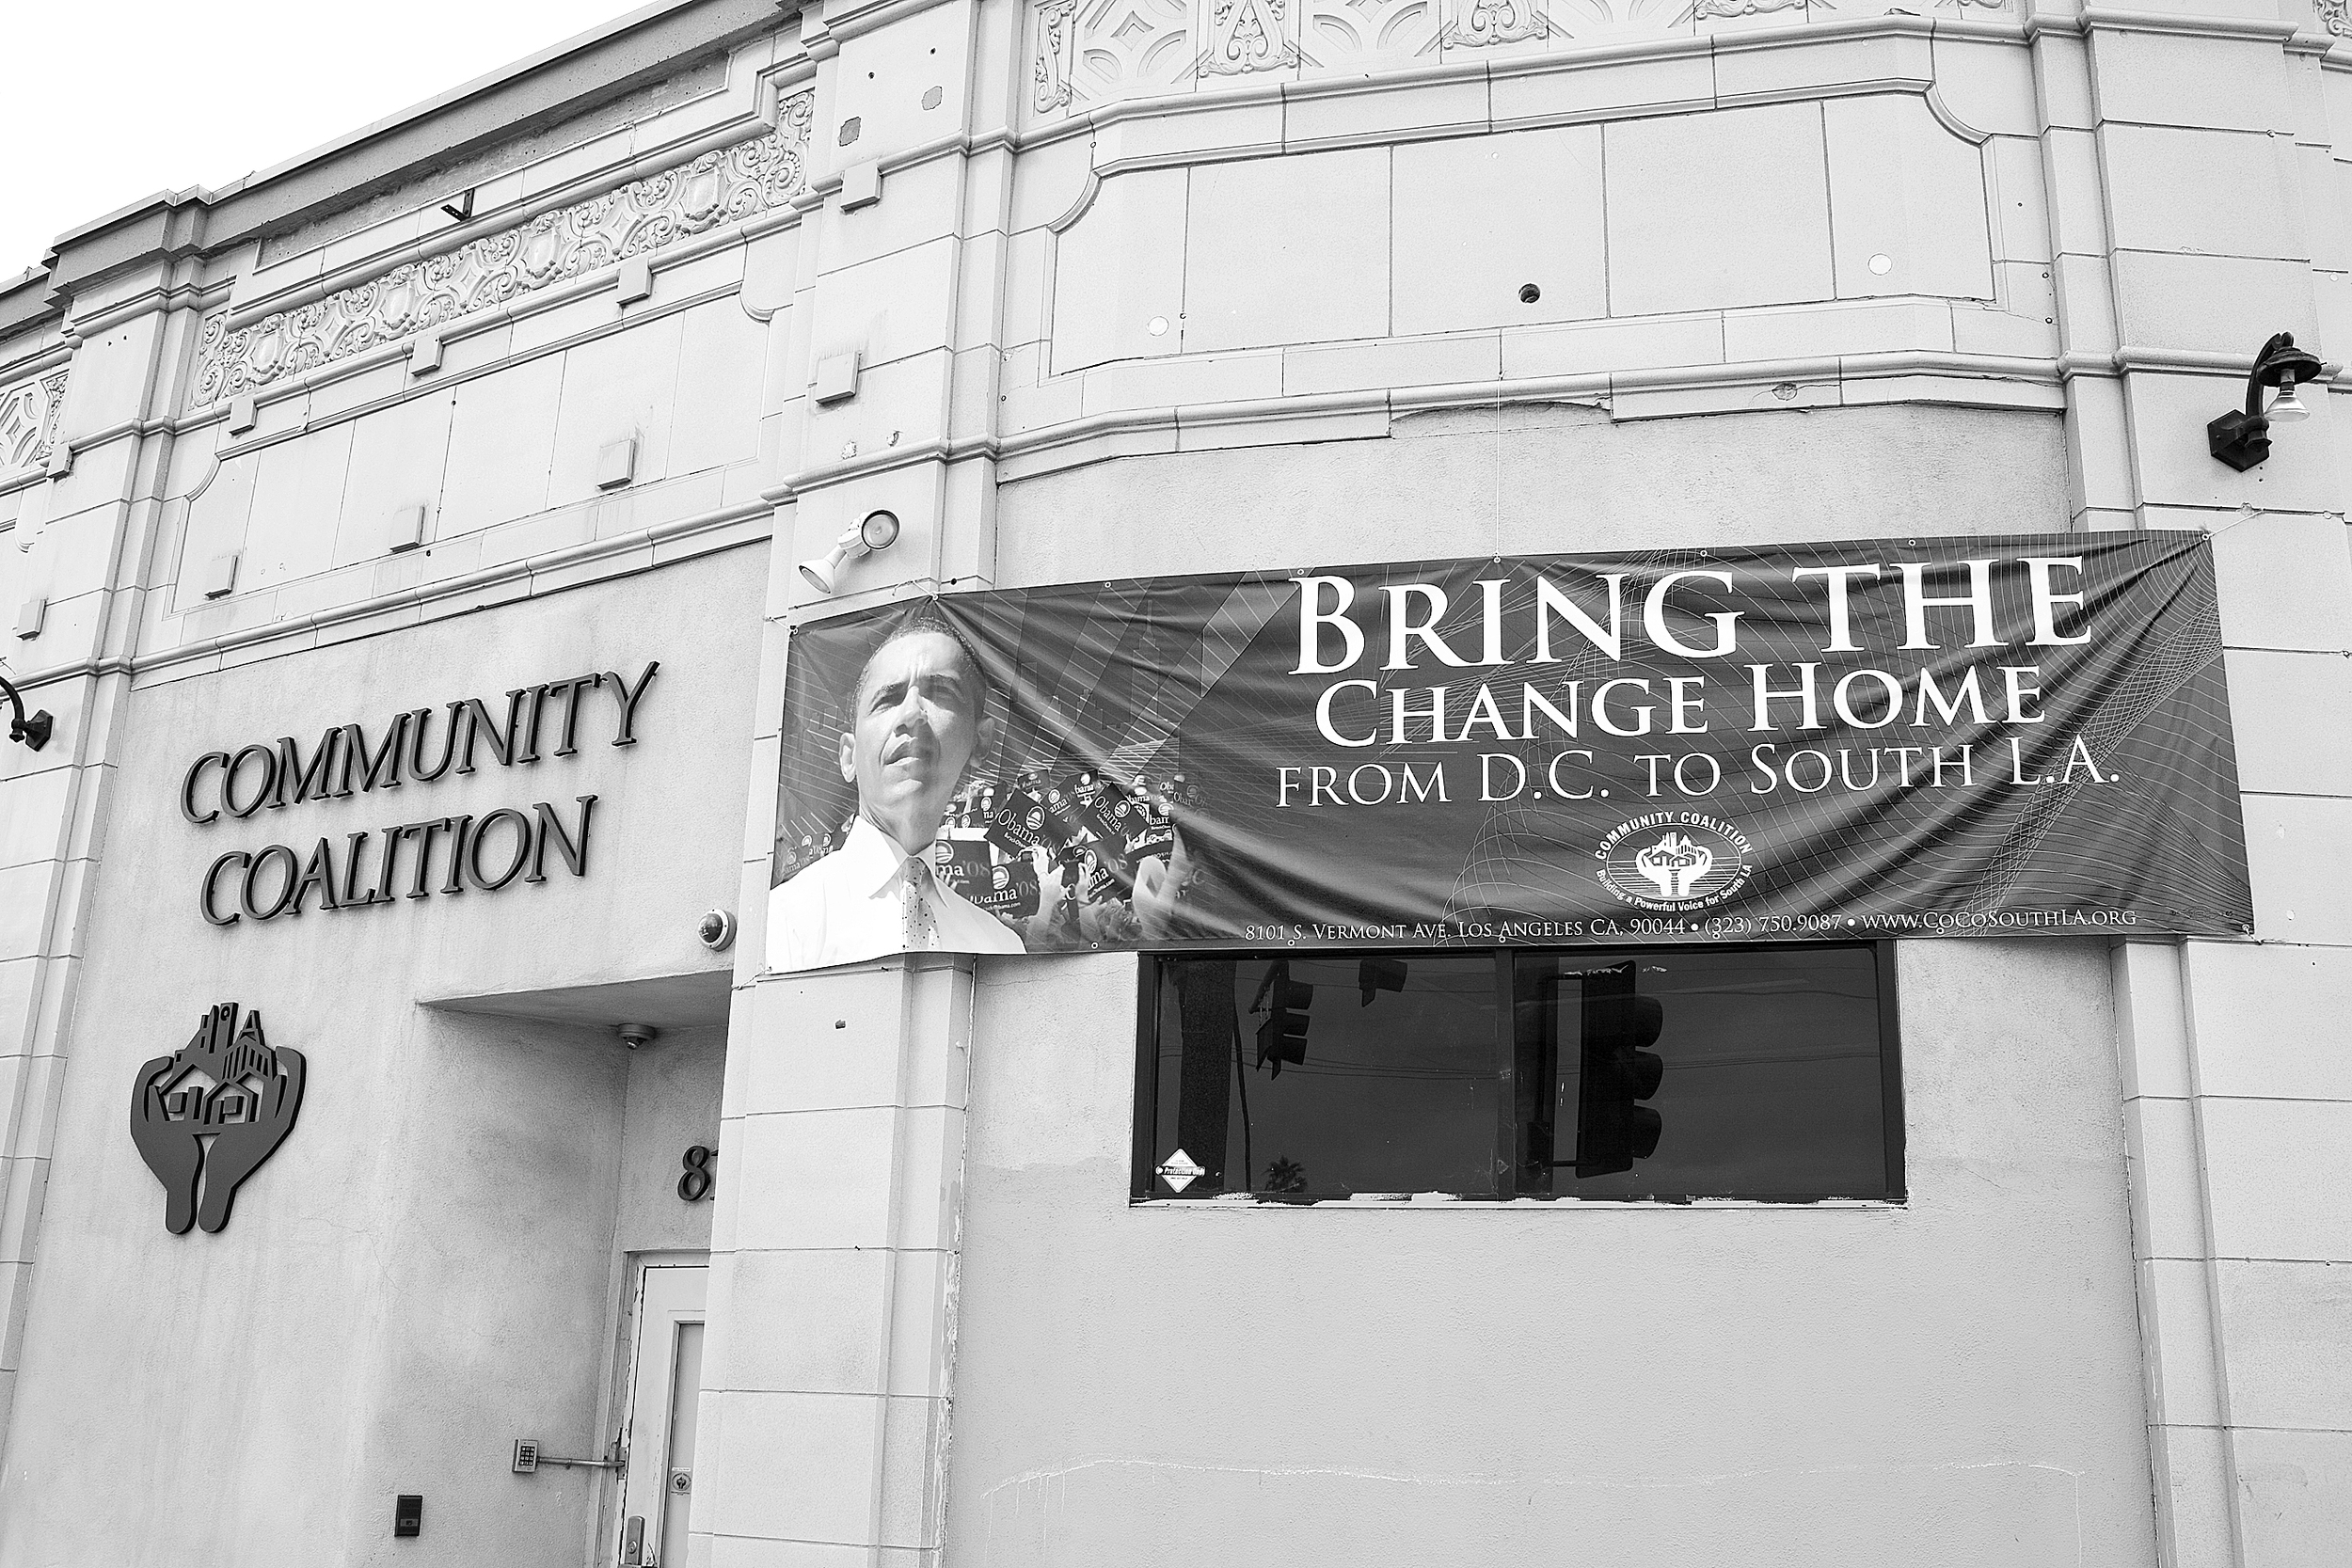 """""""Bring the Change Home from D.C. to South L.A,"""" Community Coalition, South Los Angeles. Nonprofit and social justice organizations are an essential part of South Los Angeles's landscape. 2009.                                0     false             18 pt     18 pt     0     0         false     false     false                                                     /* Style Definitions */ table.MsoNormalTable {mso-style-name:""""Table Normal""""; mso-tstyle-rowband-size:0; mso-tstyle-colband-size:0; mso-style-noshow:yes; mso-style-parent:""""""""; mso-padding-alt:0in 5.4pt 0in 5.4pt; mso-para-margin:0in; mso-para-margin-bottom:.0001pt; mso-pagination:widow-orphan; font-size:10.0pt; font-family:""""Times New Roman"""";}"""